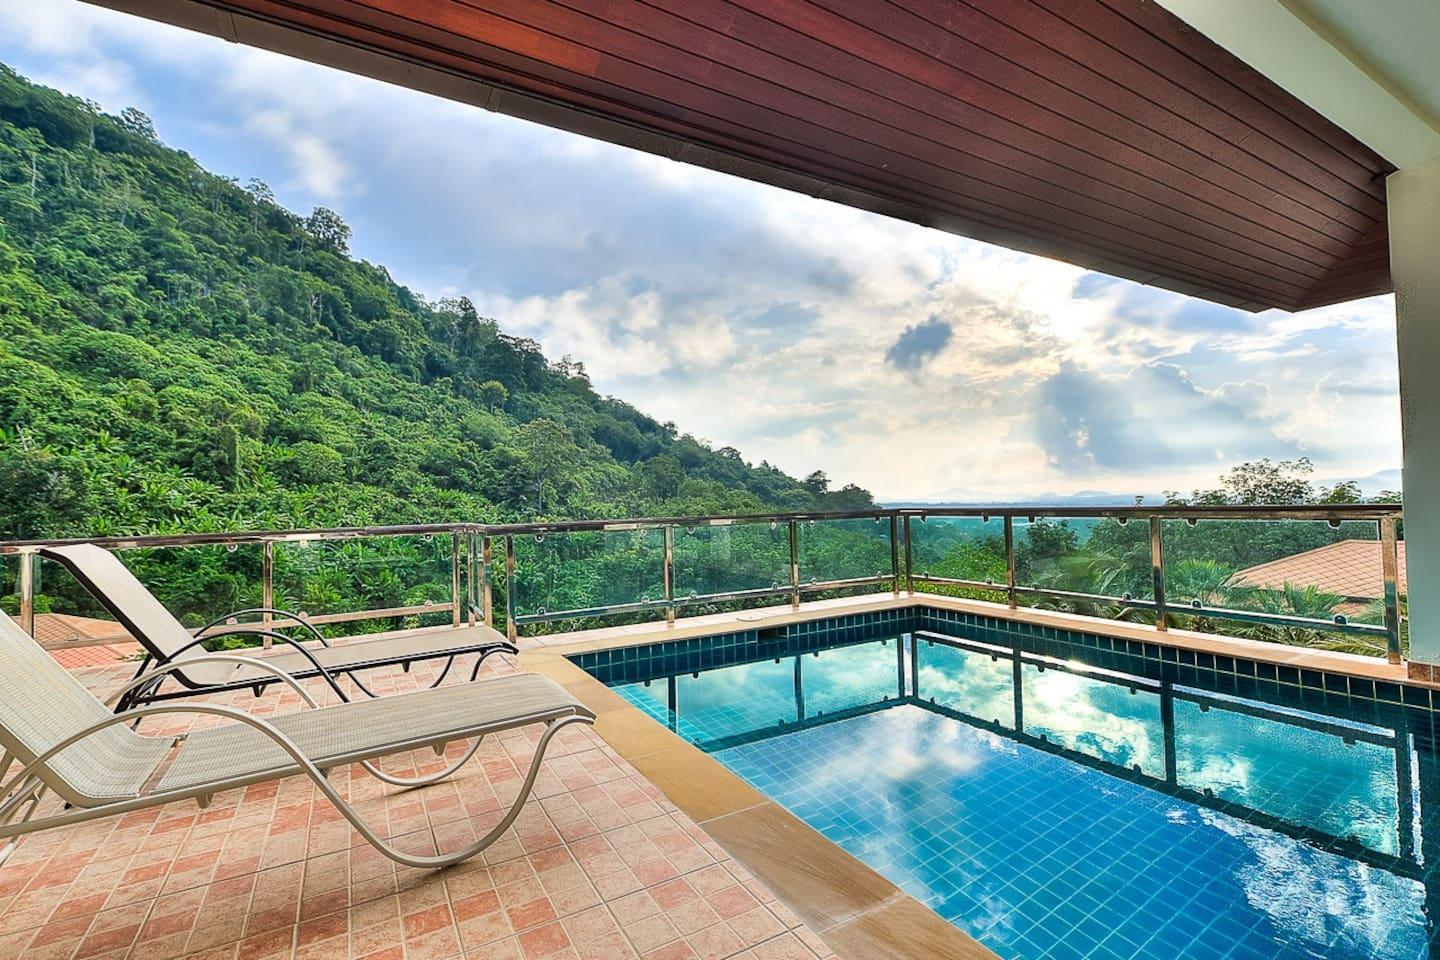 Seaview Pool Villa 5 BDR Lux @ Chalong V5 Seaview Pool Villa 5 BDR Lux @ Chalong V5